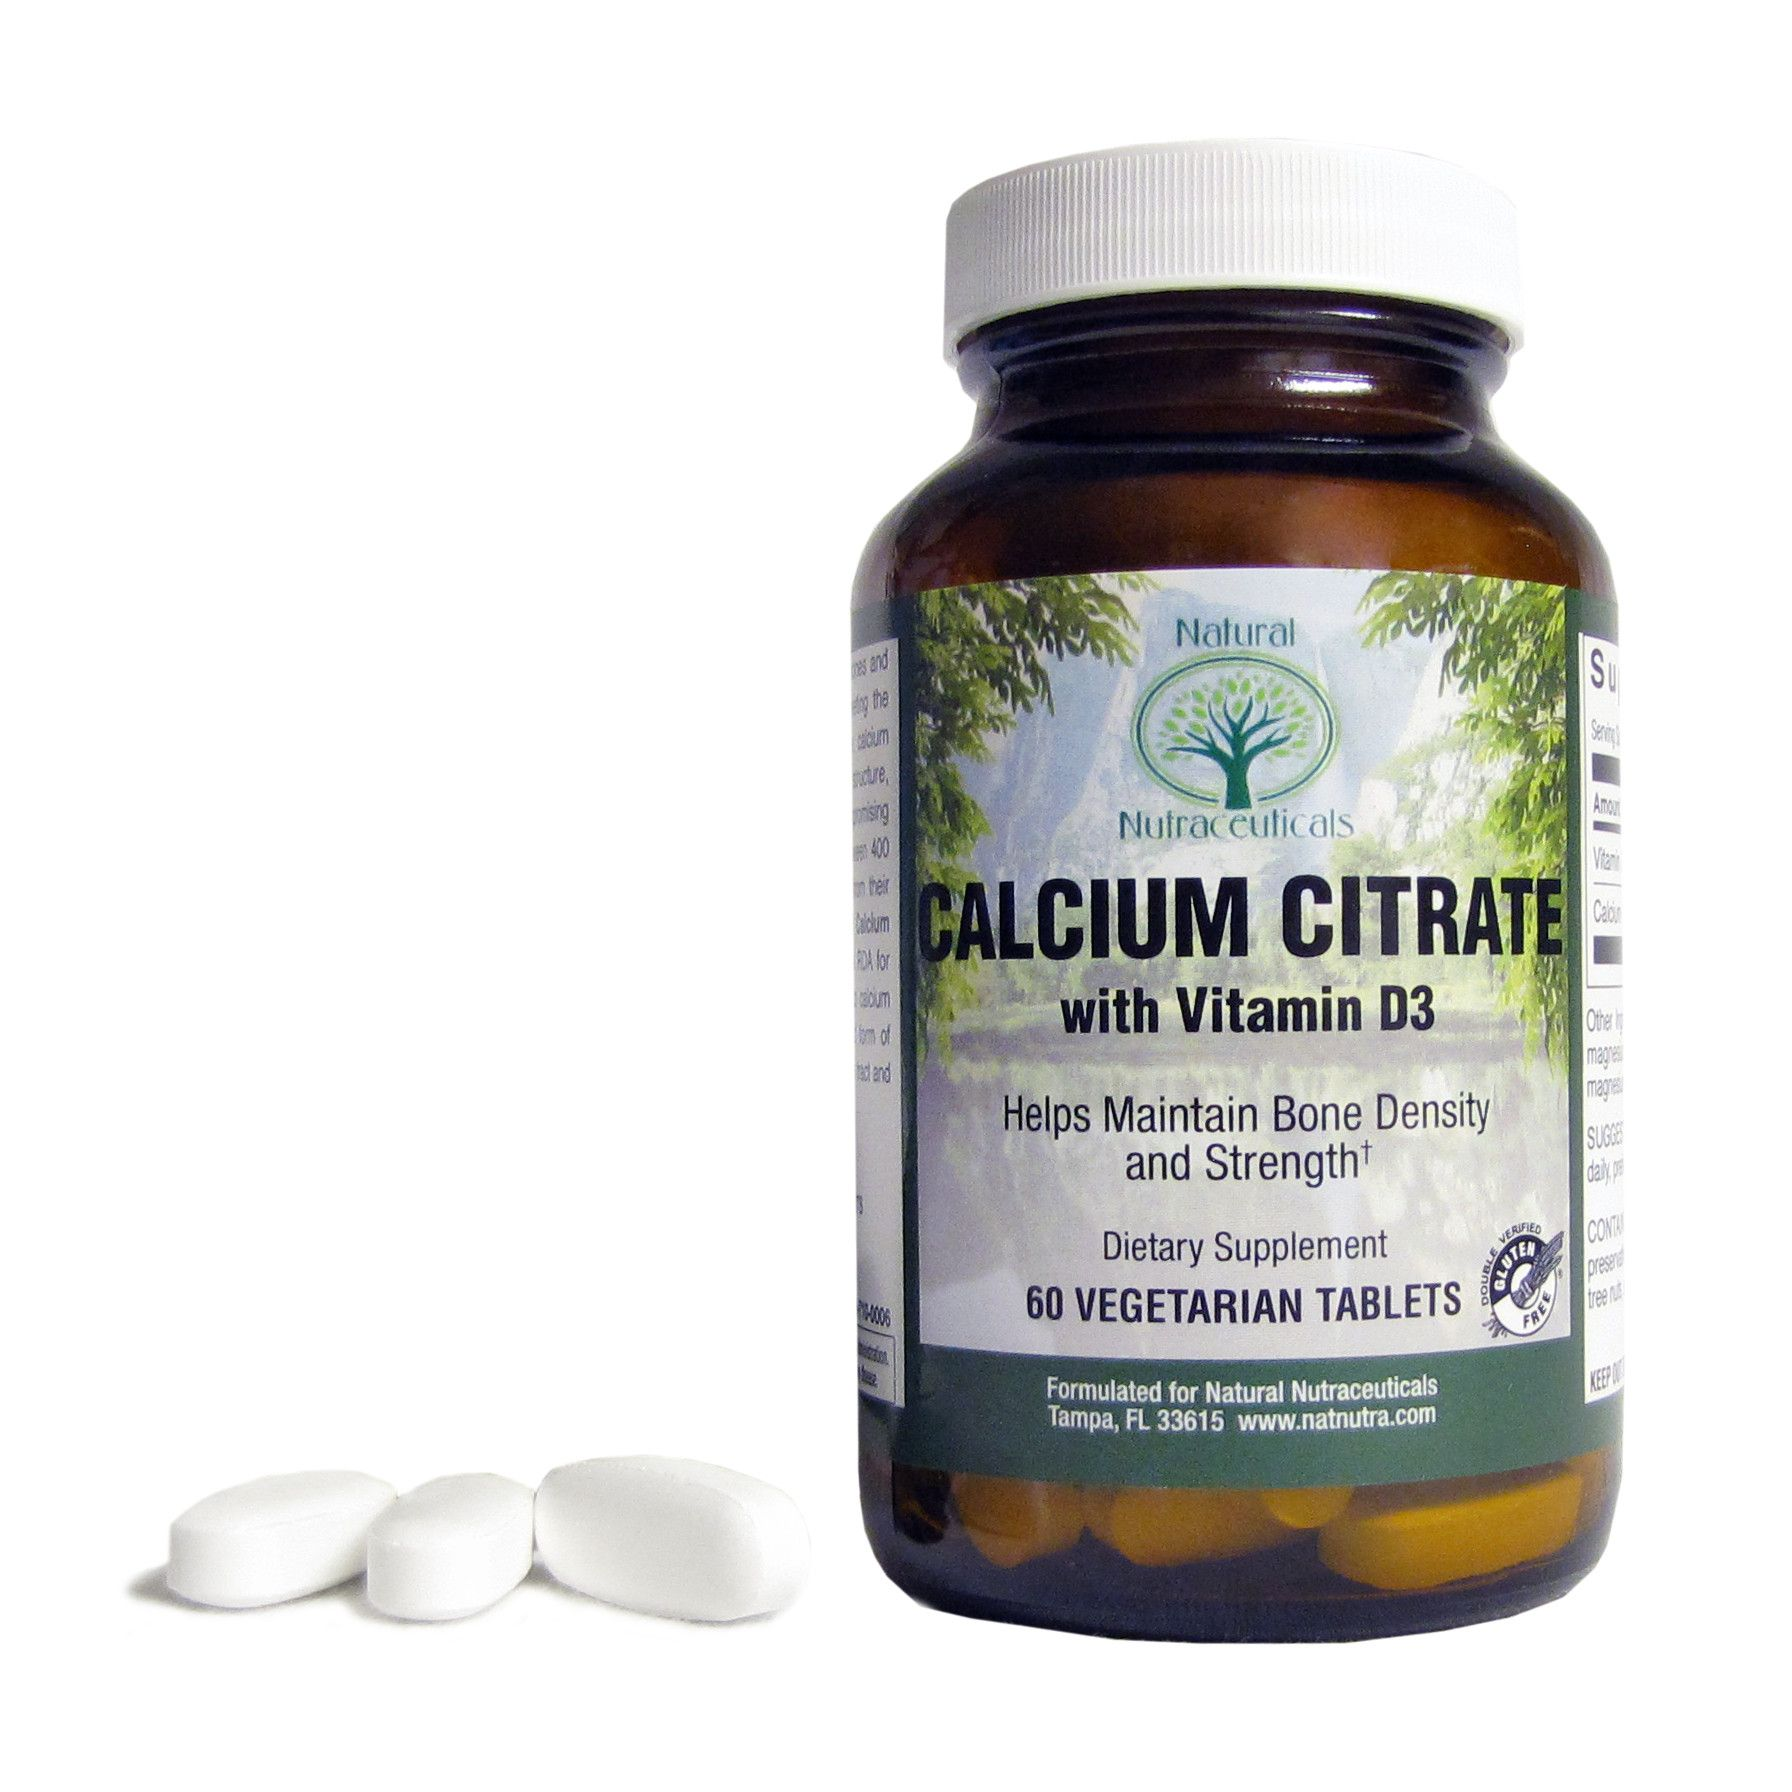 Calcium Citrate With Vitamin D3 Calcium Citrate Calcium Vitamins Vitamins